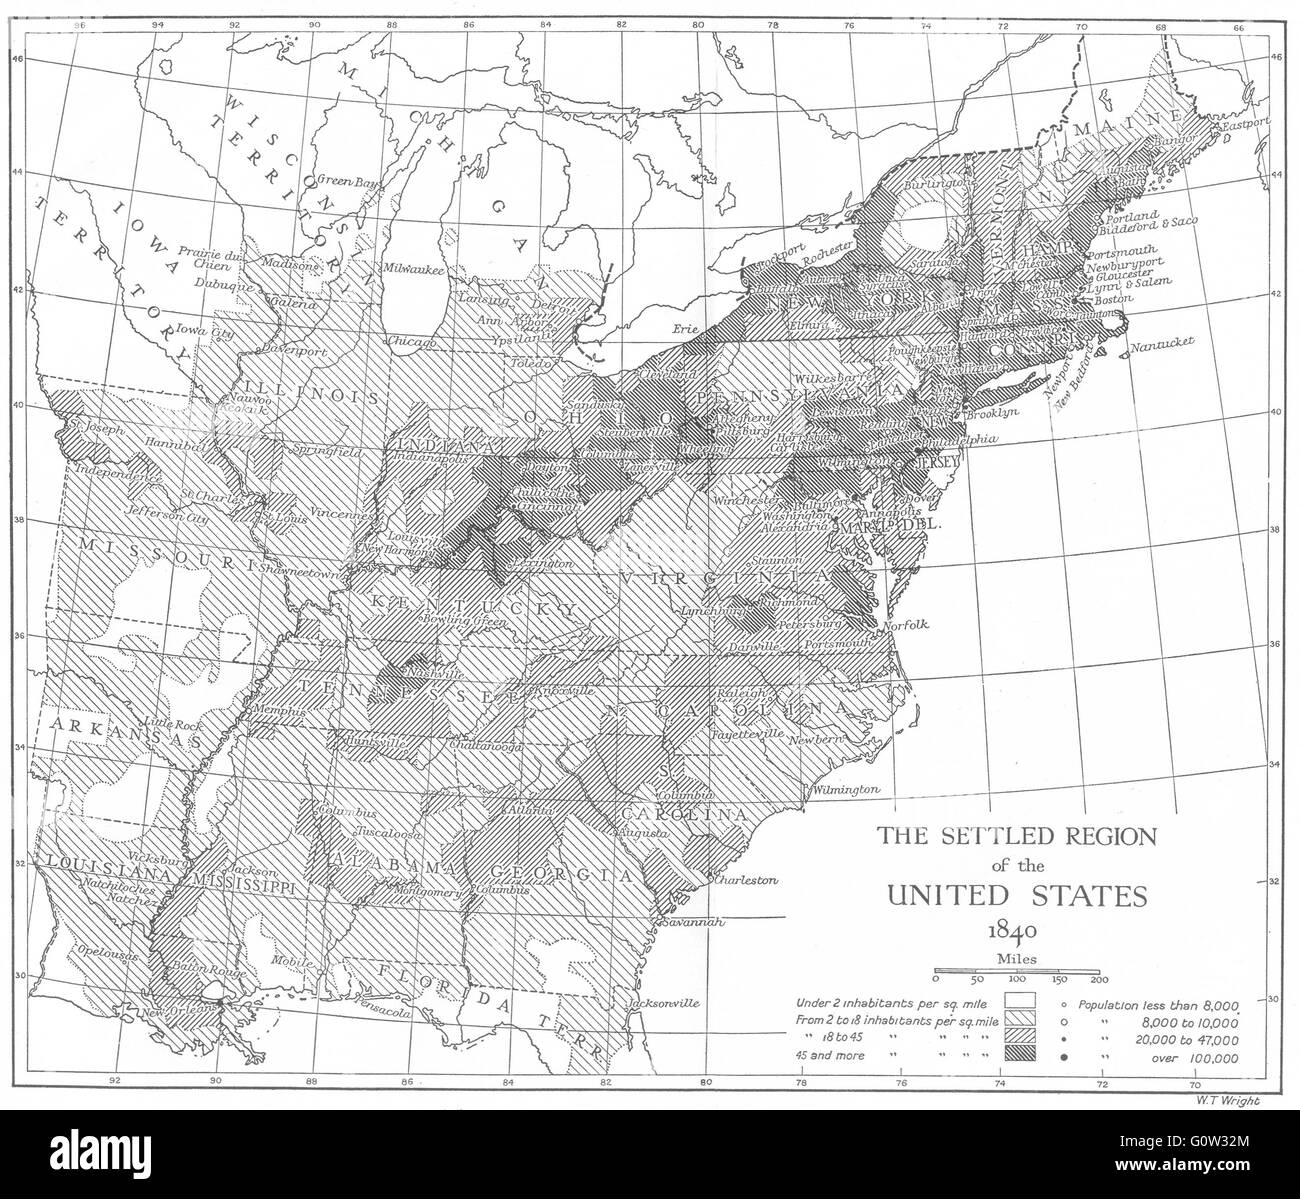 USA Northern States Settled Region Of US - 1850 map of us